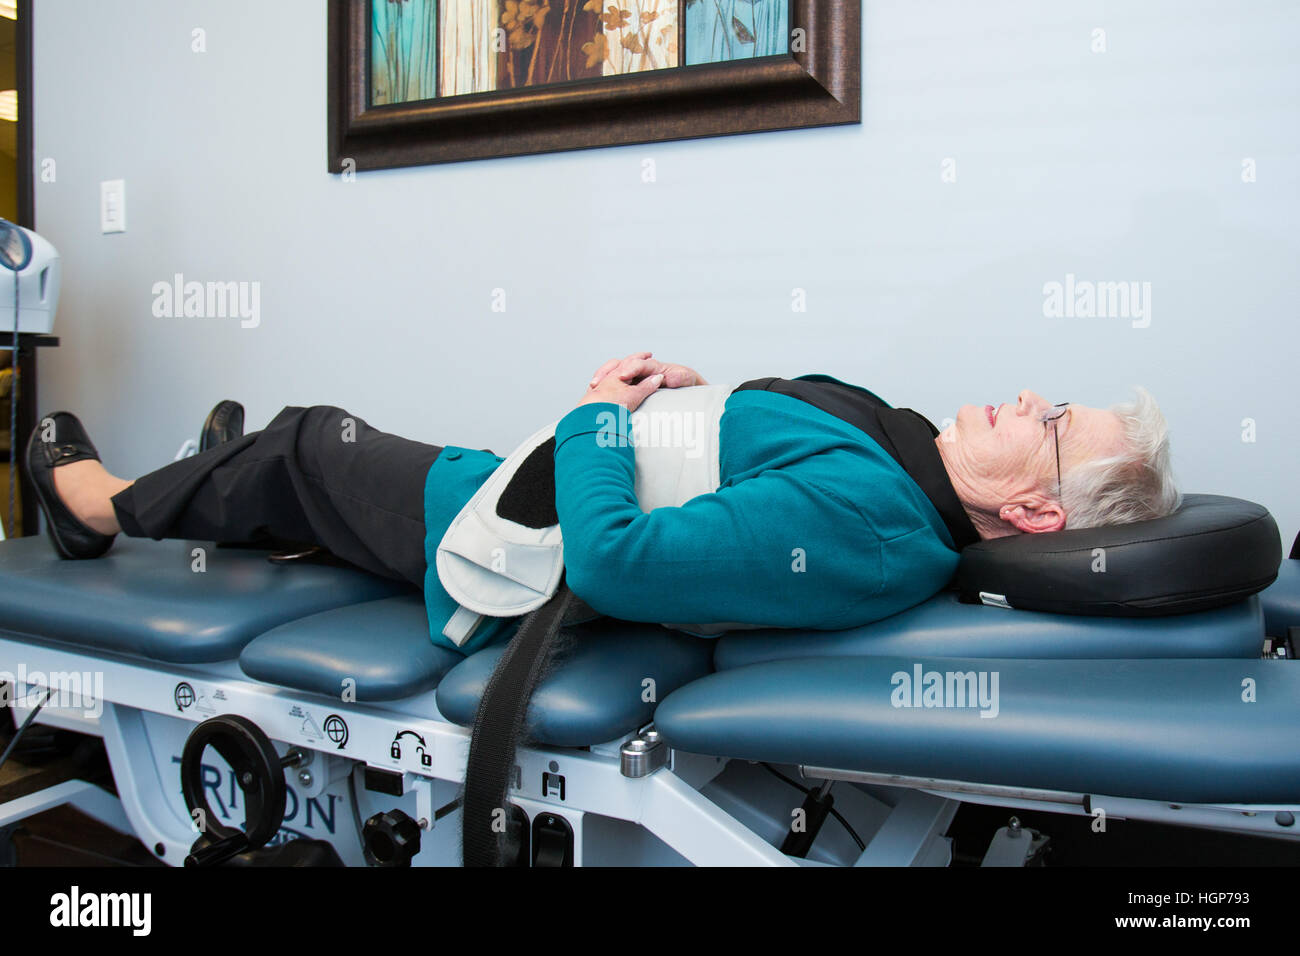 Spinal decompression therapy, decompression table - Stock Image